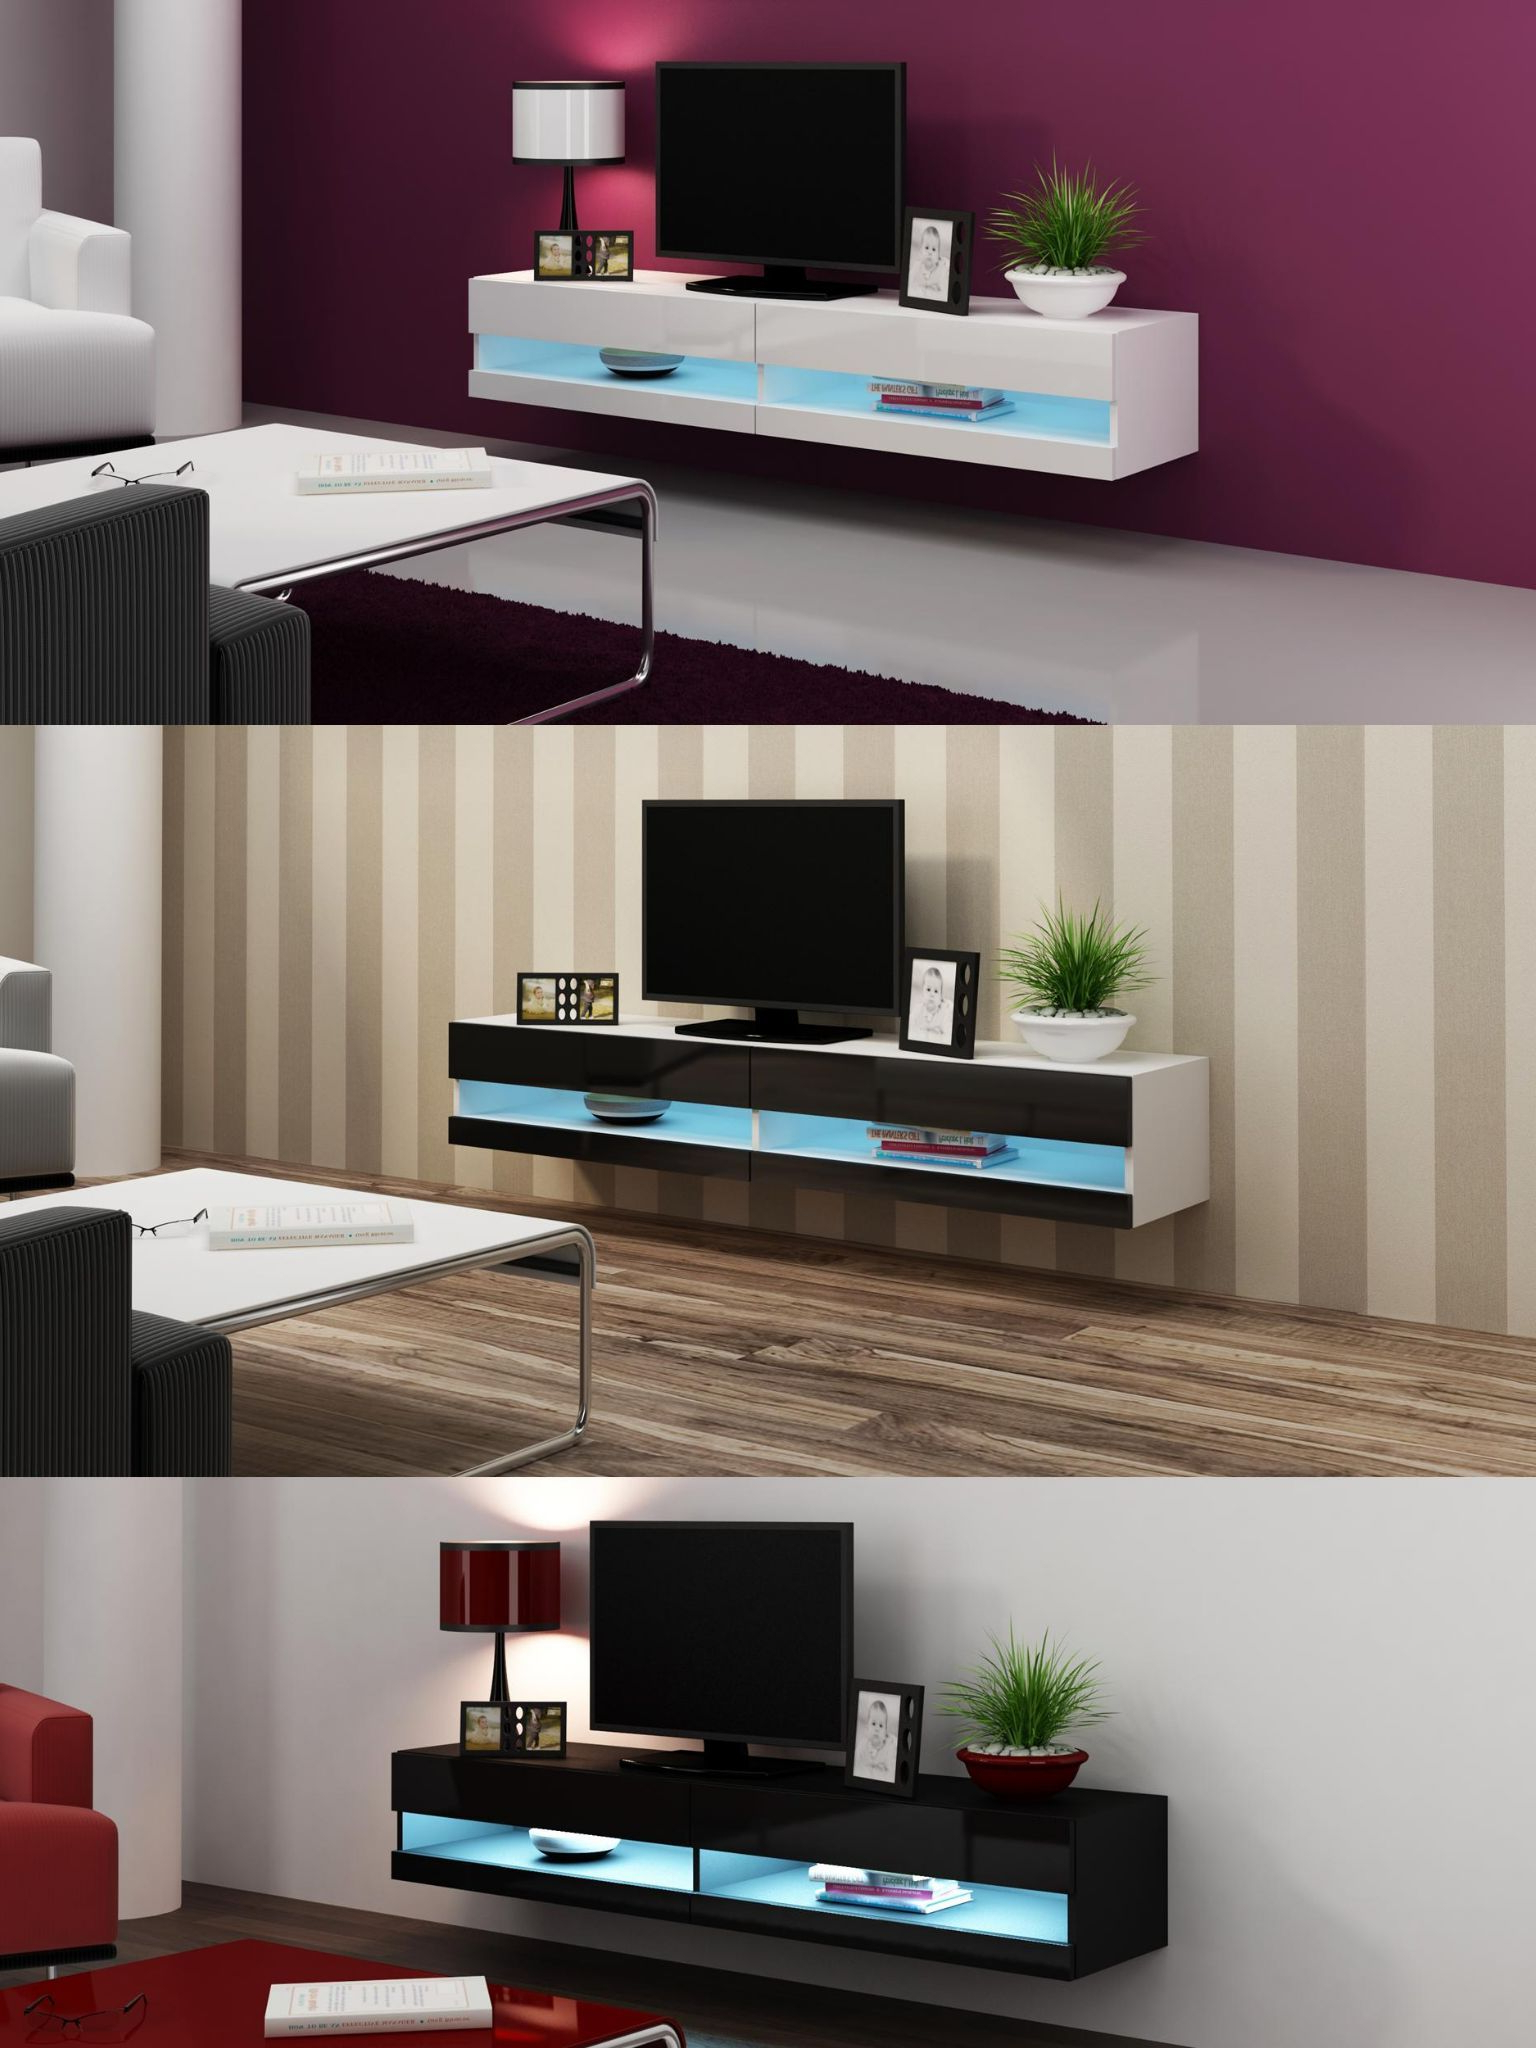 Pin On House Ideas For Galicia 180cm Led Wide Wall Tv Unit Stands (View 13 of 20)